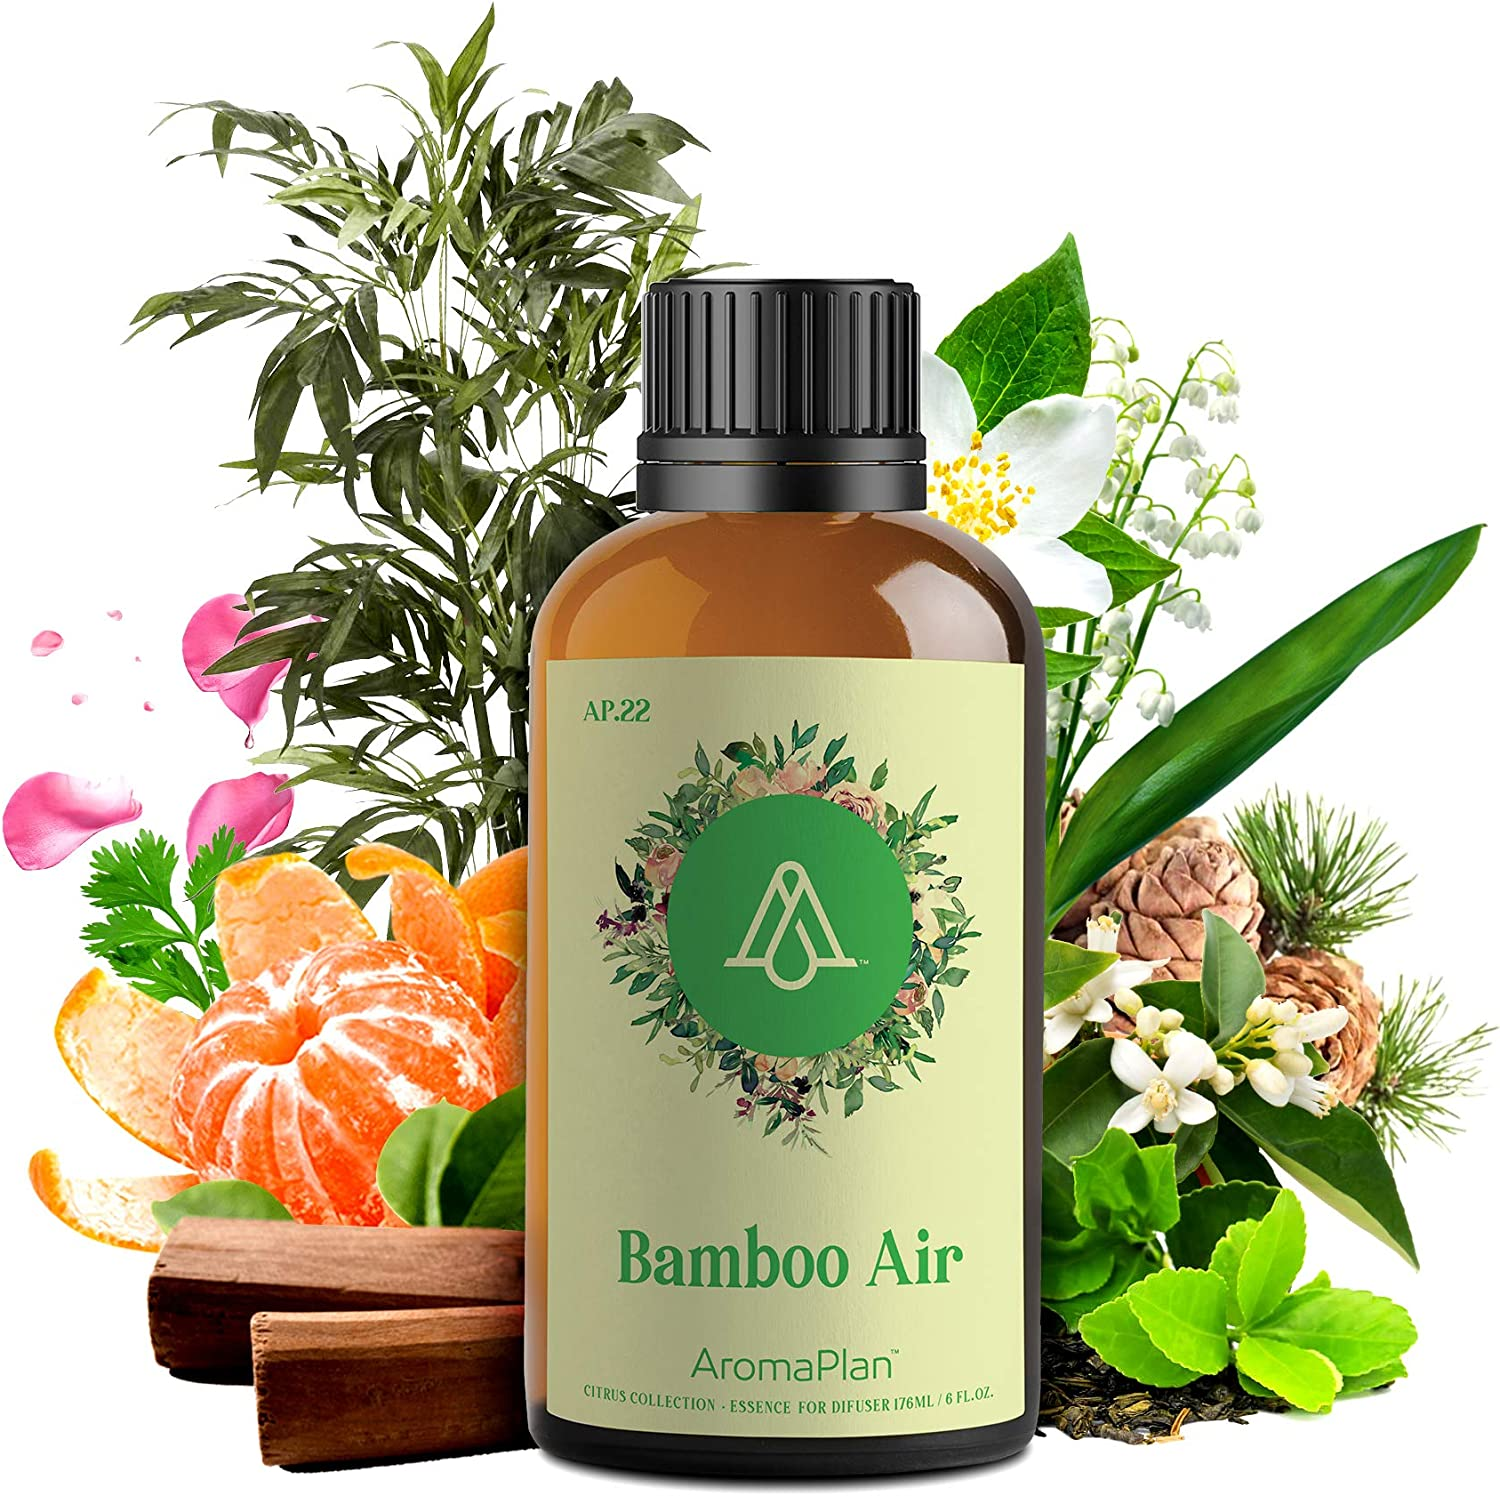 AROMAPLAN Aroma Oil for Scent Fort Worth Mall Bamboo Atlanta Mall Air - Natural Diffusers